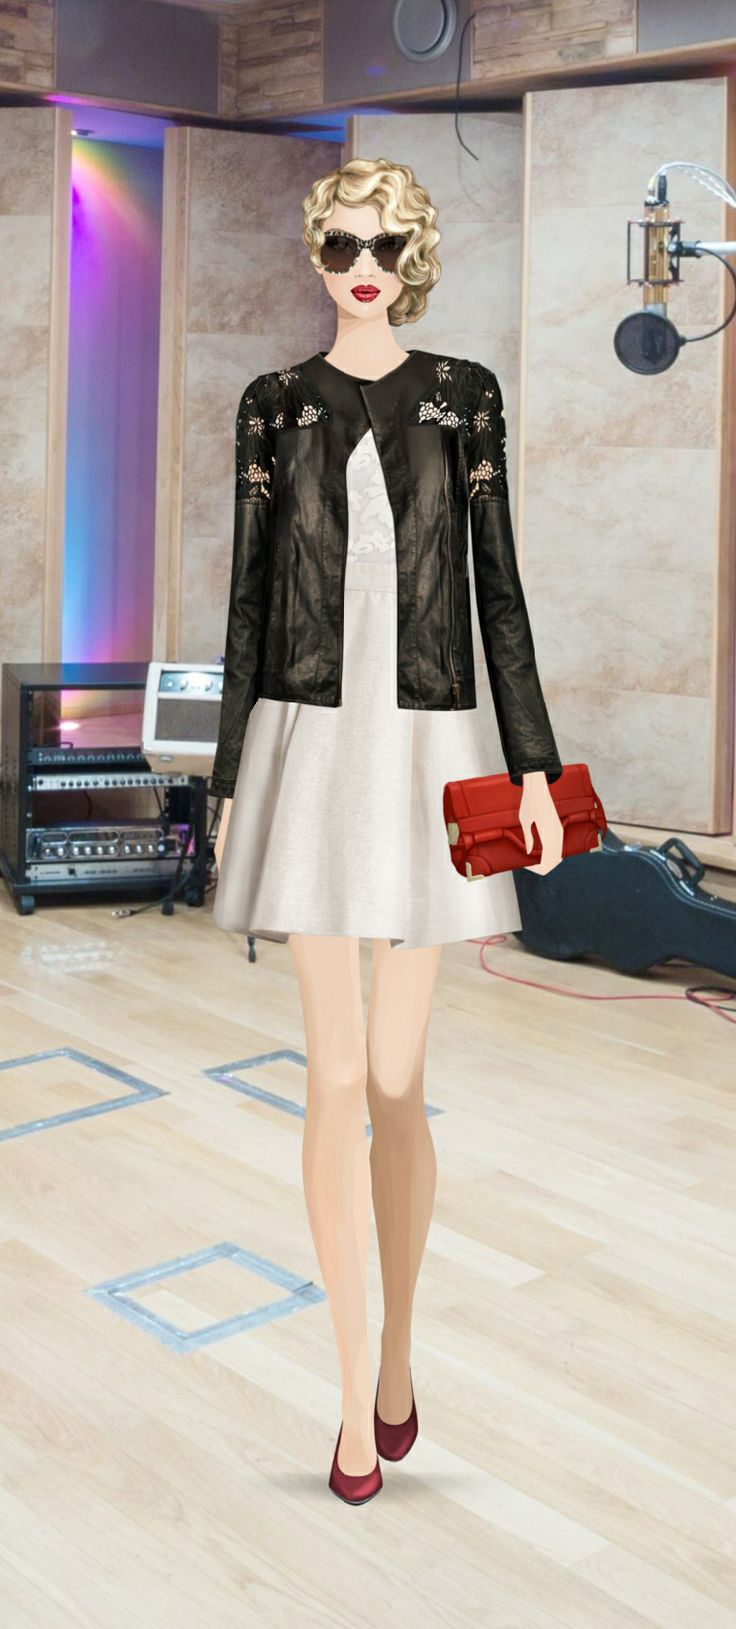 Uk Pop Star Event On Covet Fashion Game Covet Fashion Game Pinterest Covet Fashion And